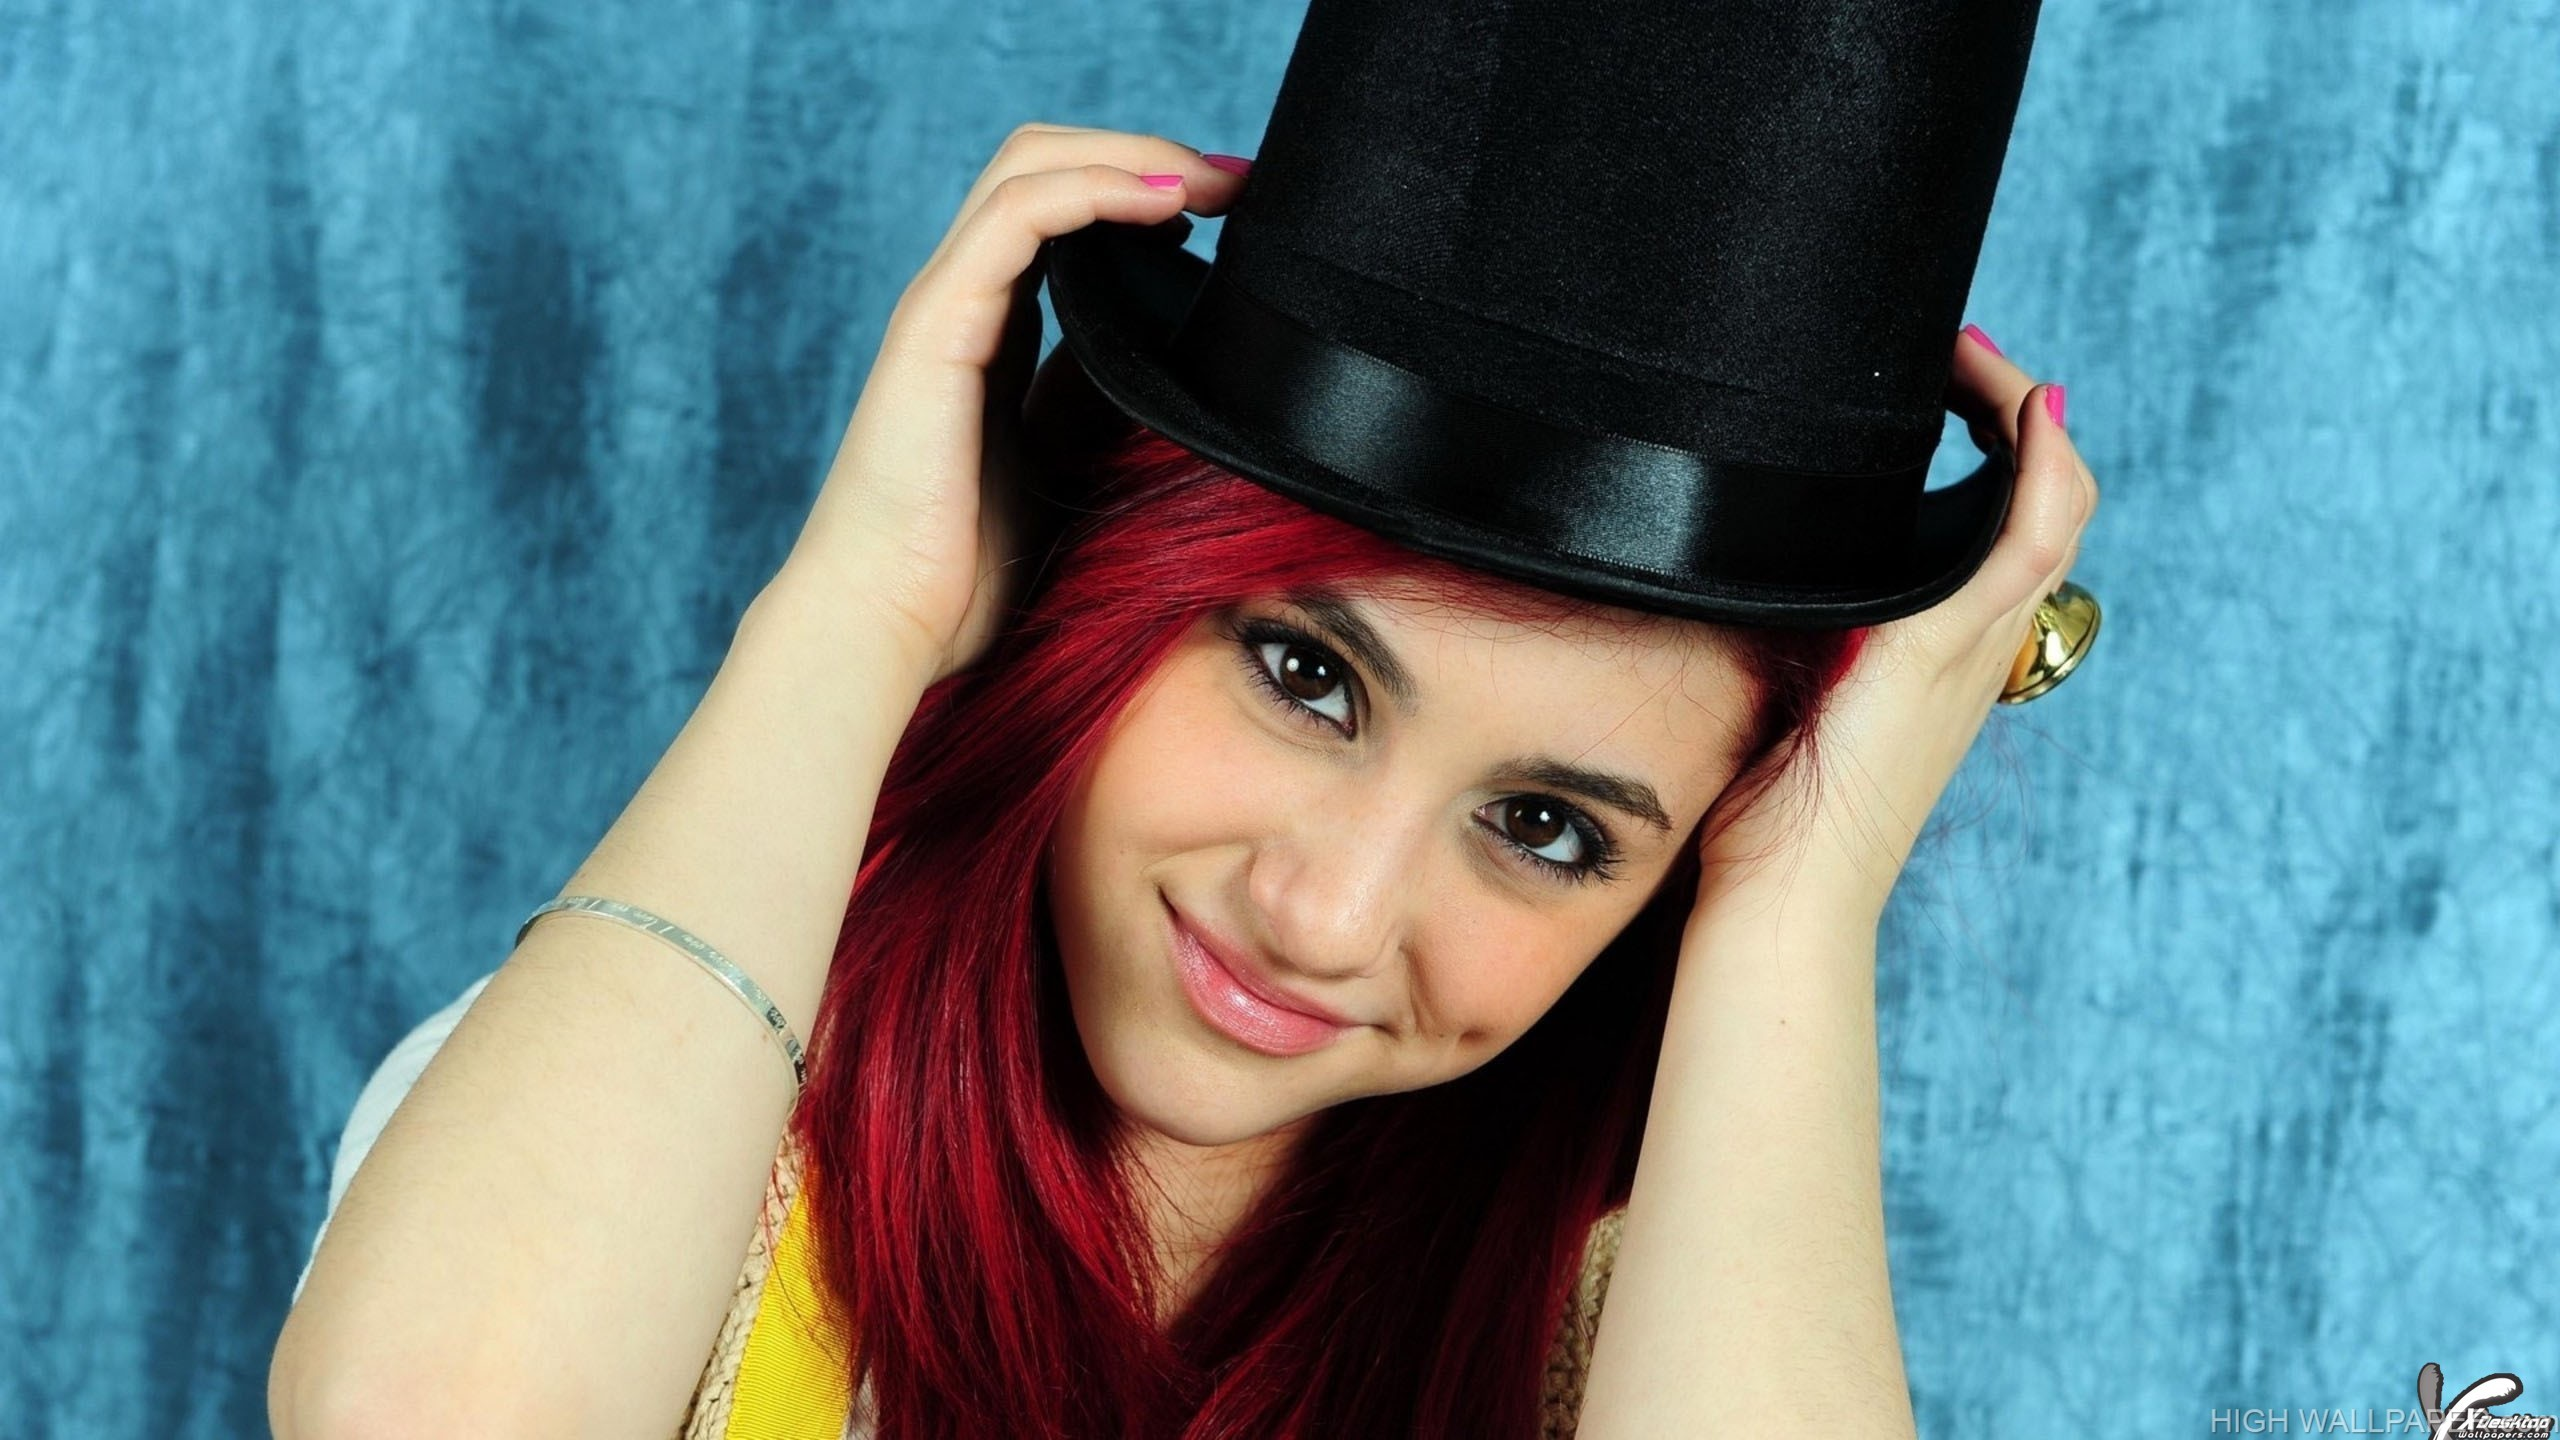 Ariana Grande Making A Pose With Black Hat